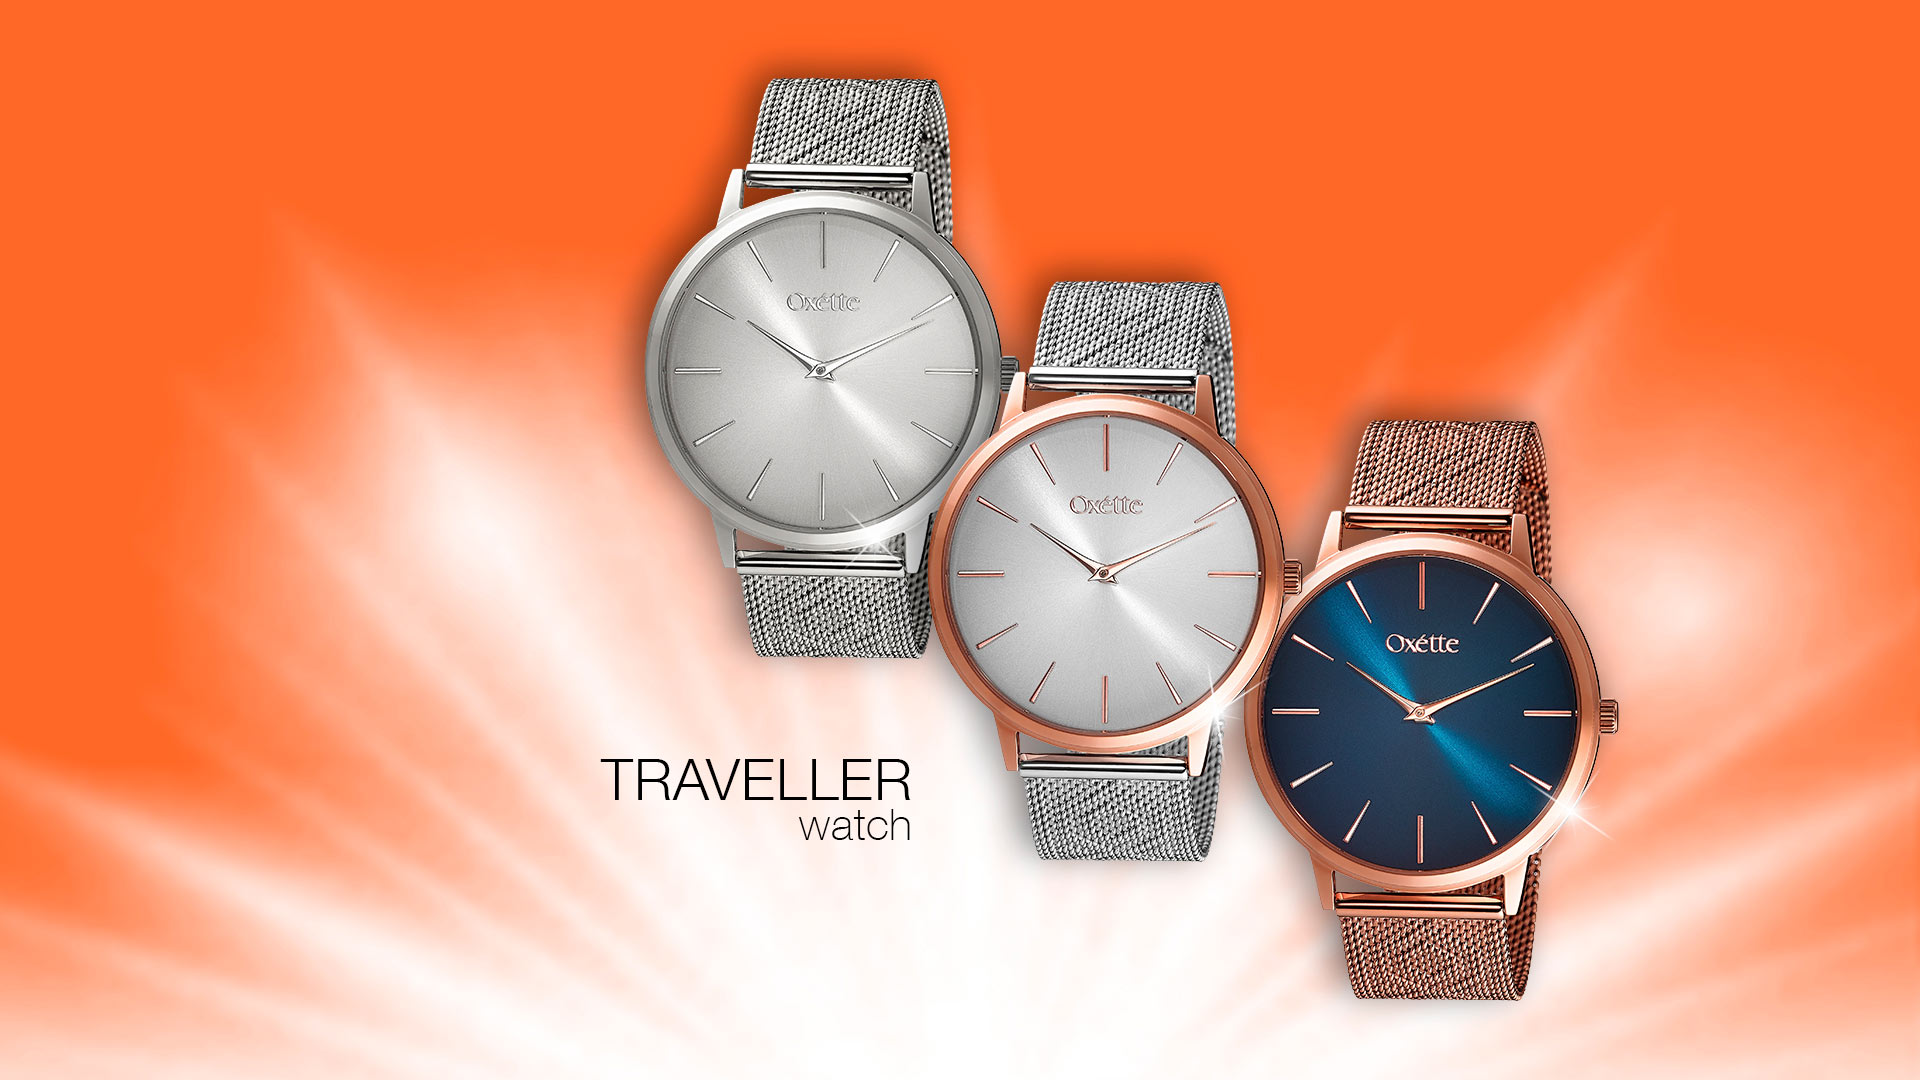 Traveller Watch - Oxette